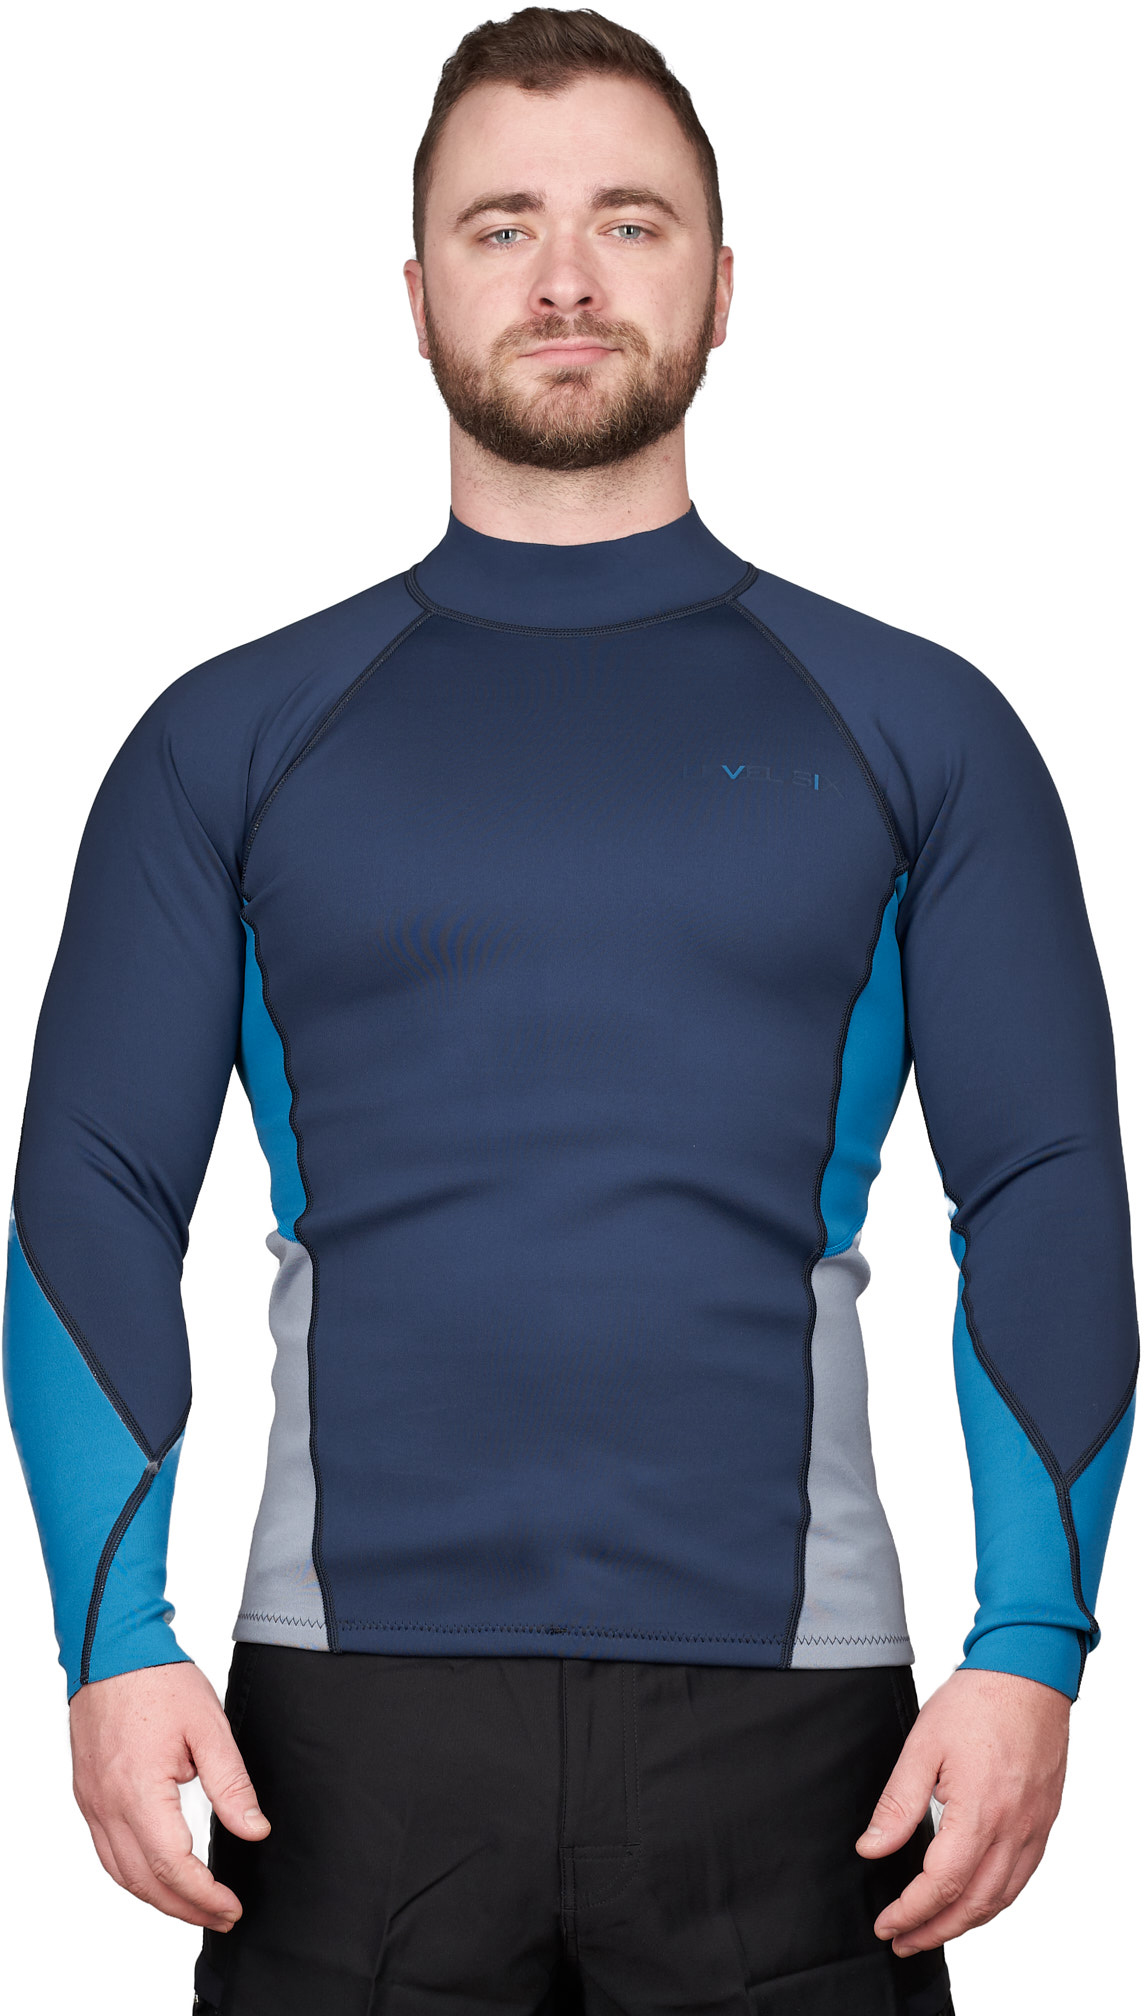 9bbcc78d7c Rashguards and sunguards | MEC